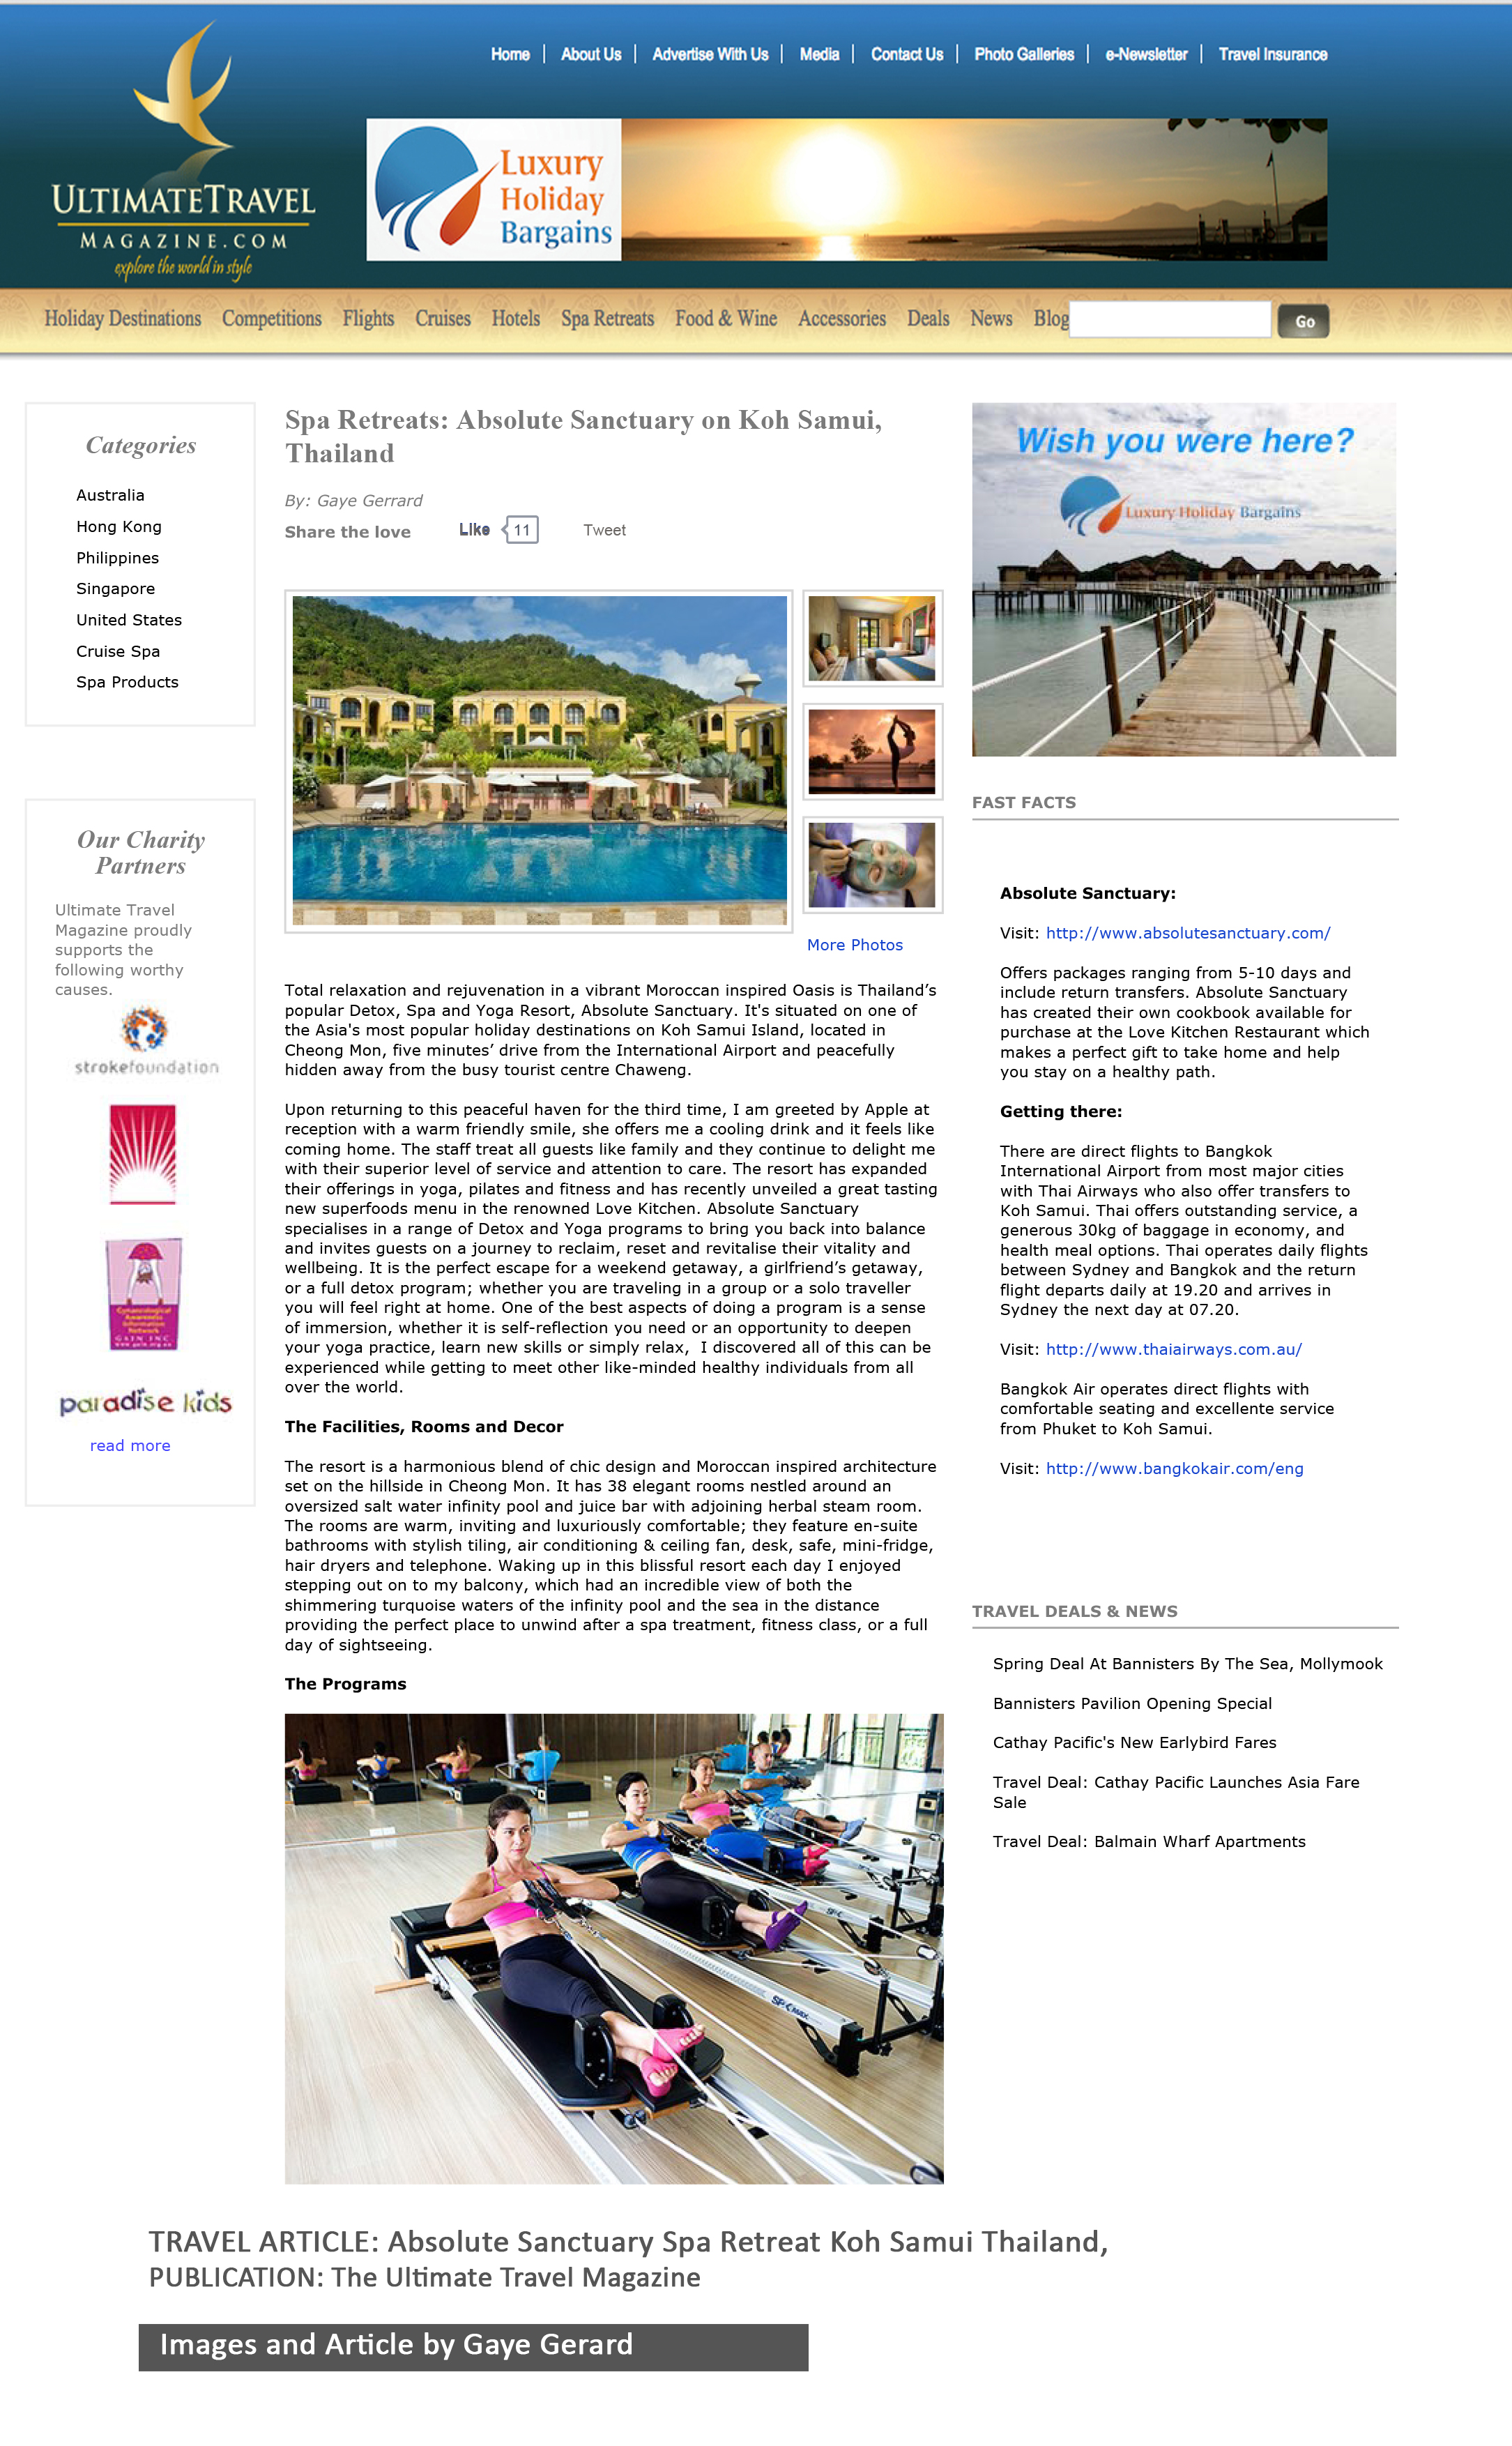 absolute sanctuary page 1- ultimate travel magazine.jpg